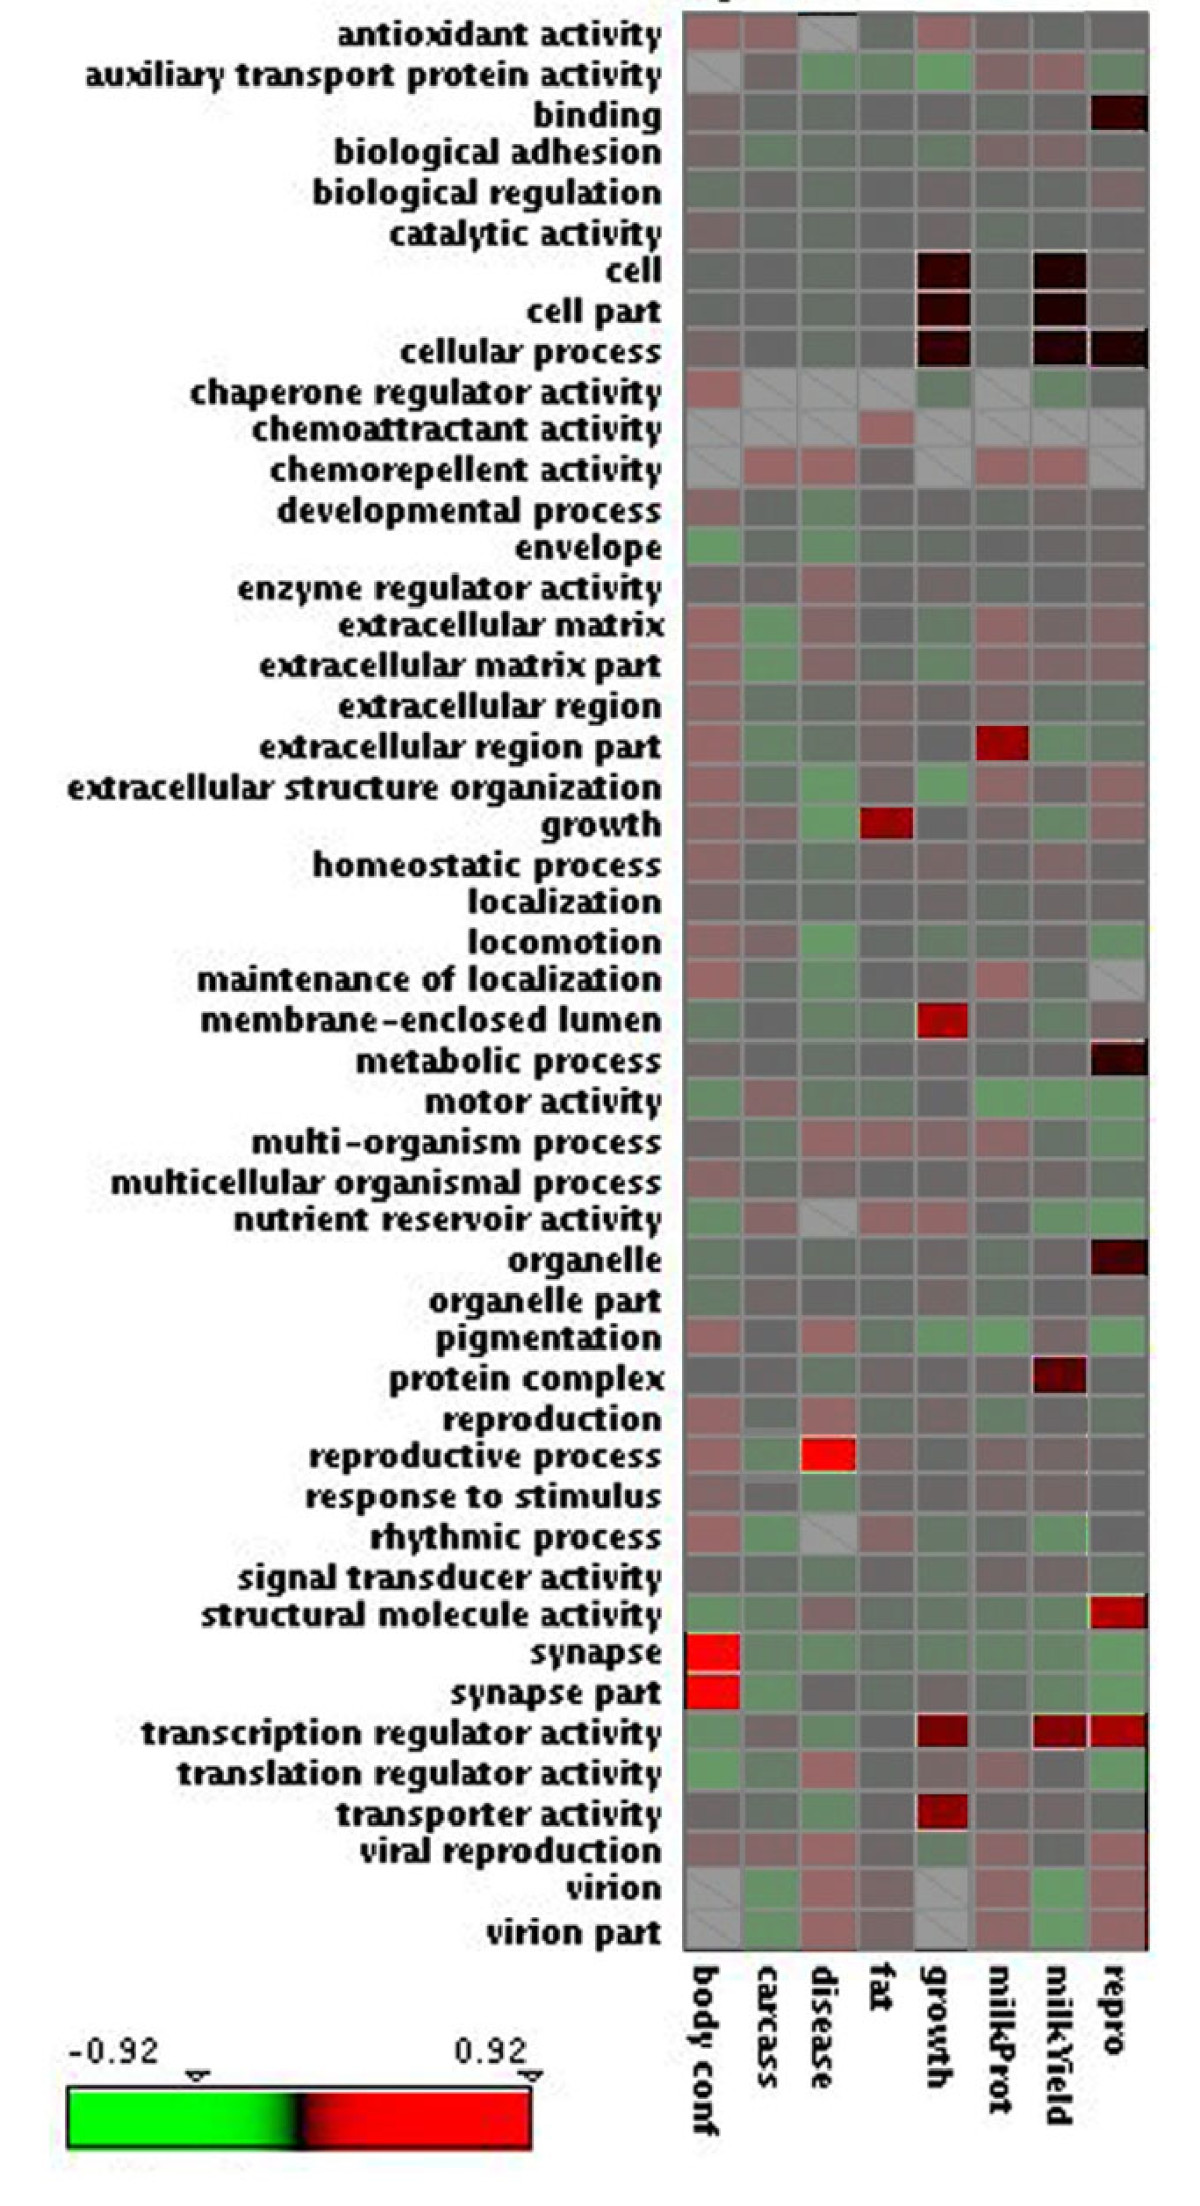 https://static-content.springer.com/image/art%3A10.1186%2F1471-2164-10-184/MediaObjects/12864_2008_Article_2068_Fig3_HTML.jpg